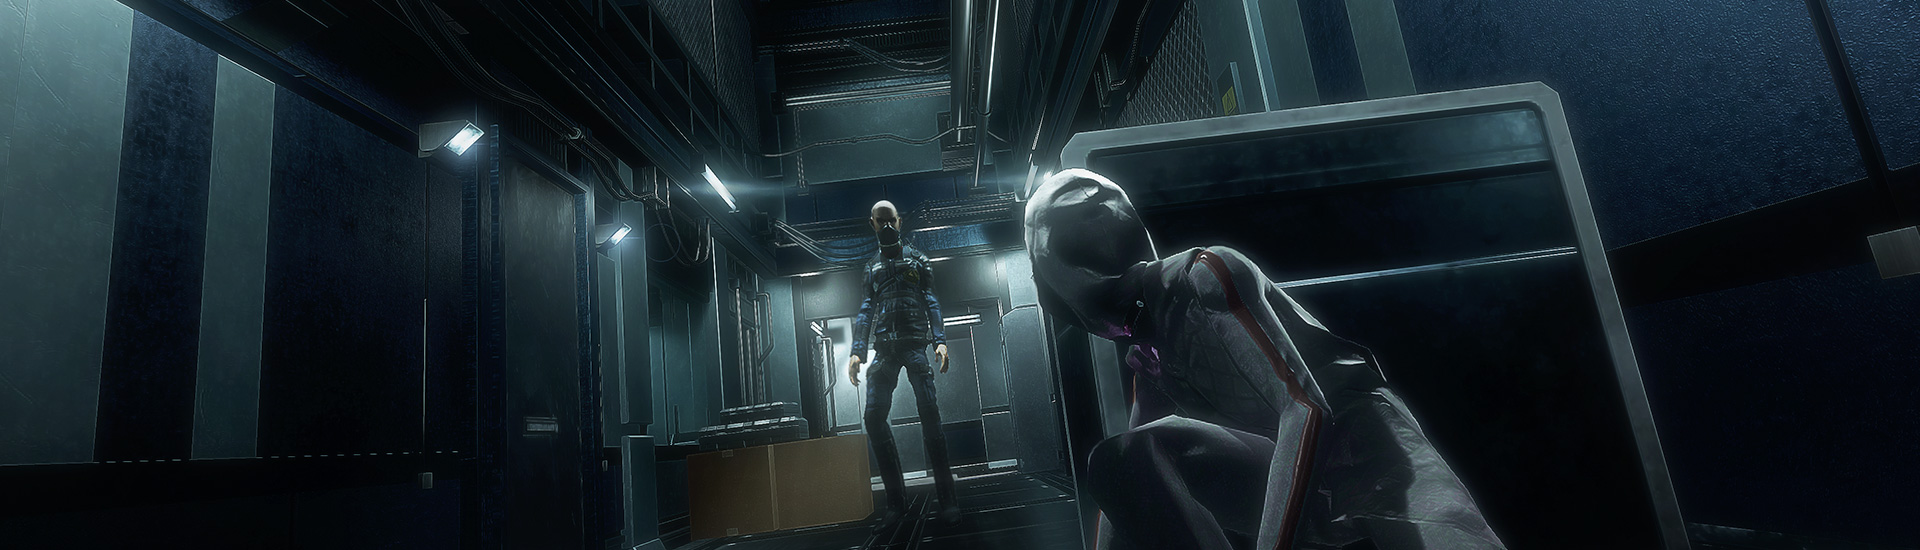 Remastering Republique: The Journey to Unity 5 - Unity